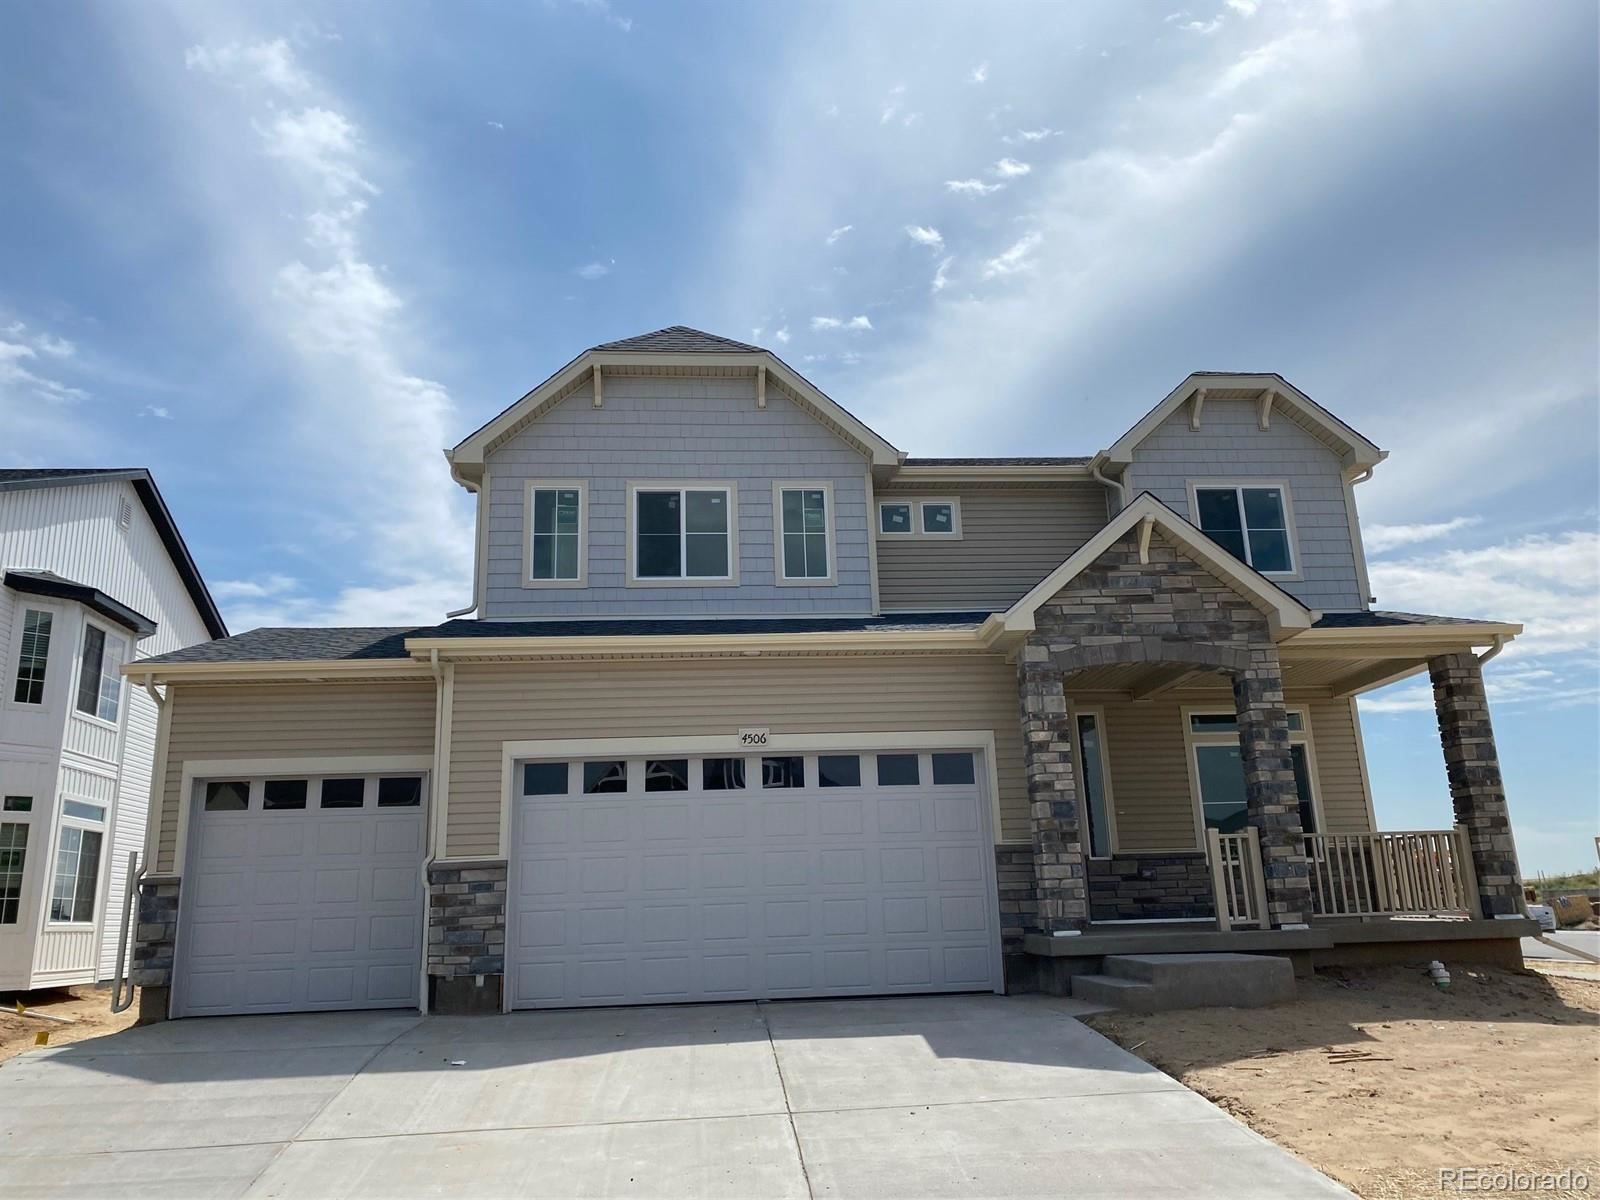 4506 Quatar Court, Aurora, CO 80019 - #: 5433241